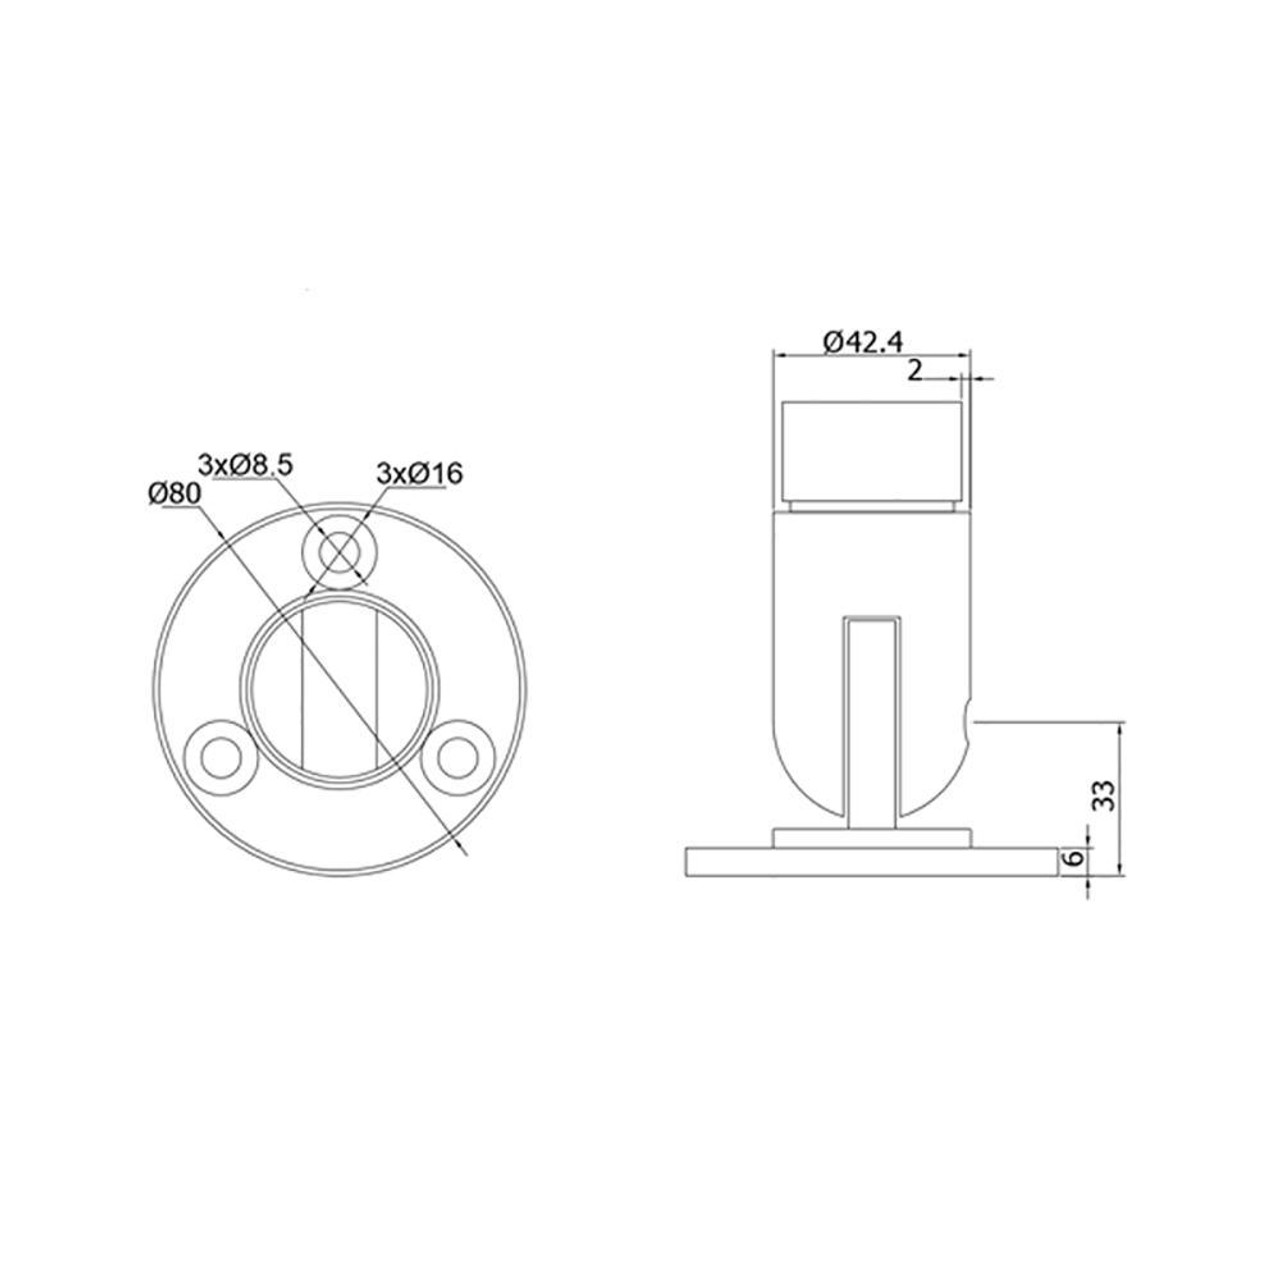 Adjustable Wall Mount Flange for 42.4 mm Round Rail, CADD